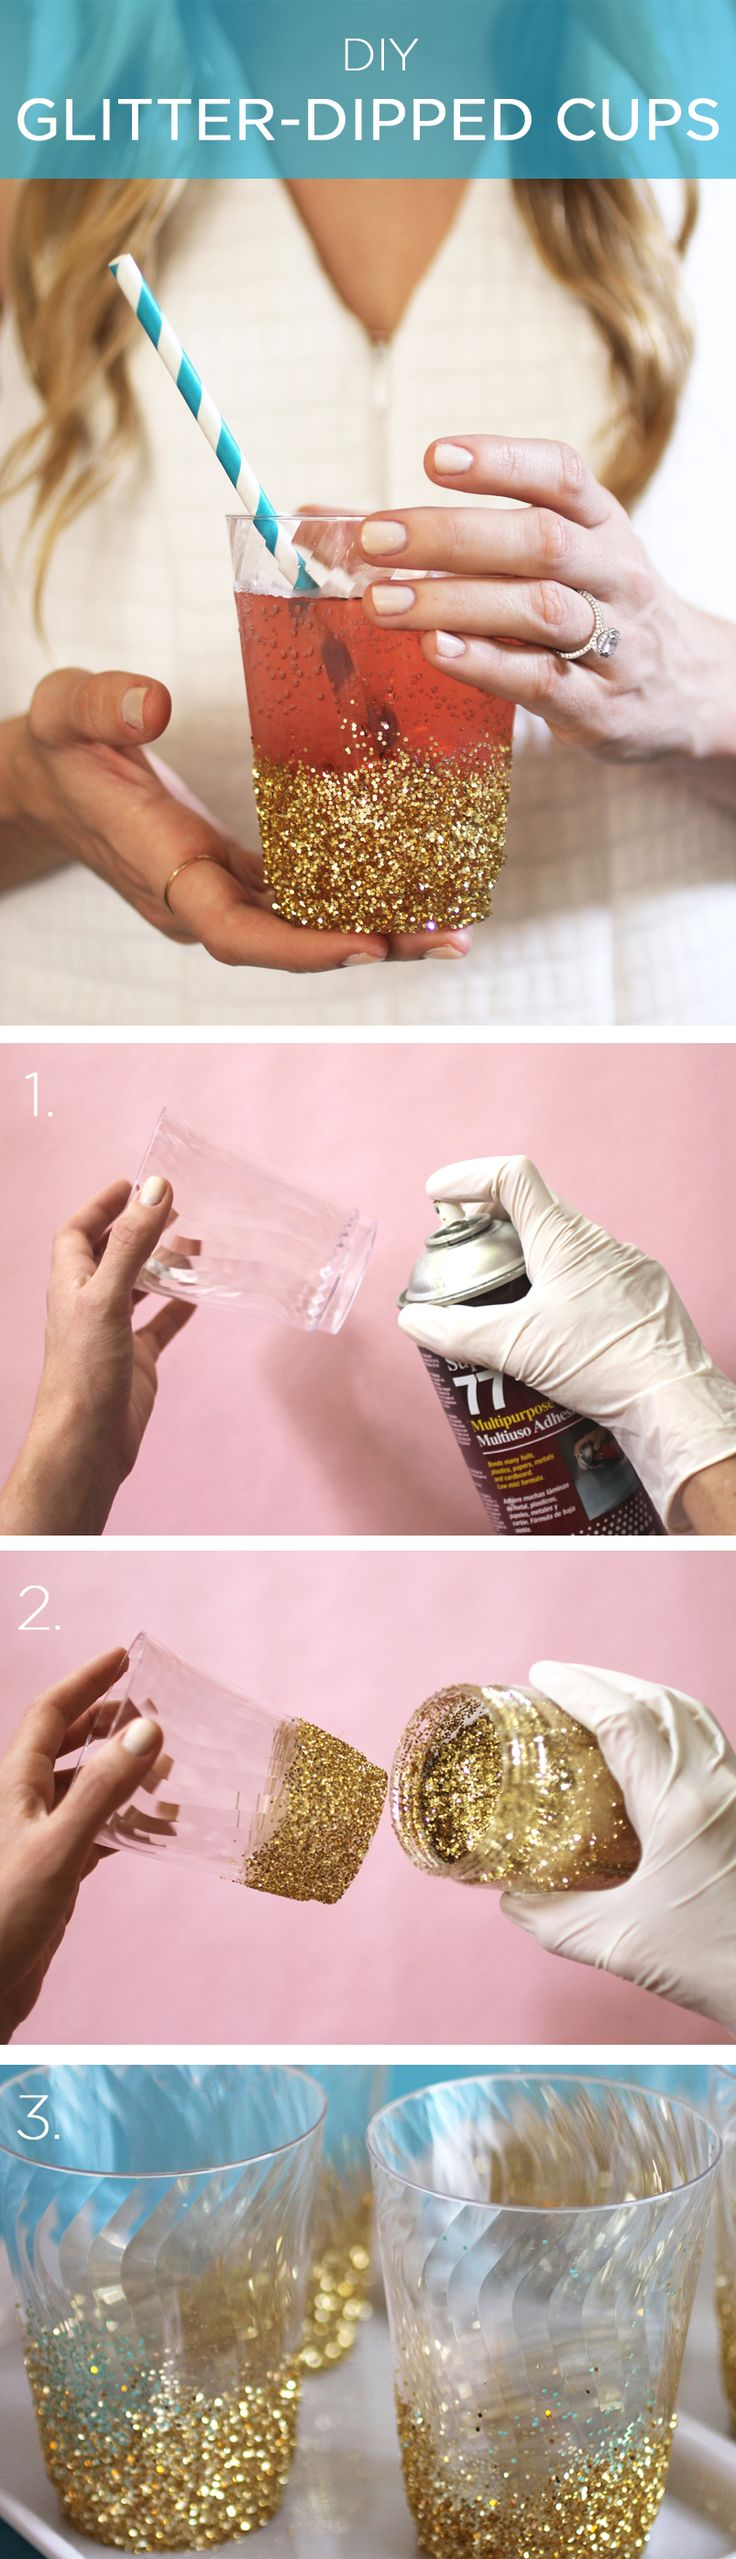 Add some glam to your drink wear with #DIY Glitter-Dipped Cups using @Phoebe Rose Tagaca Cut Crystal Collection! #EviteParty